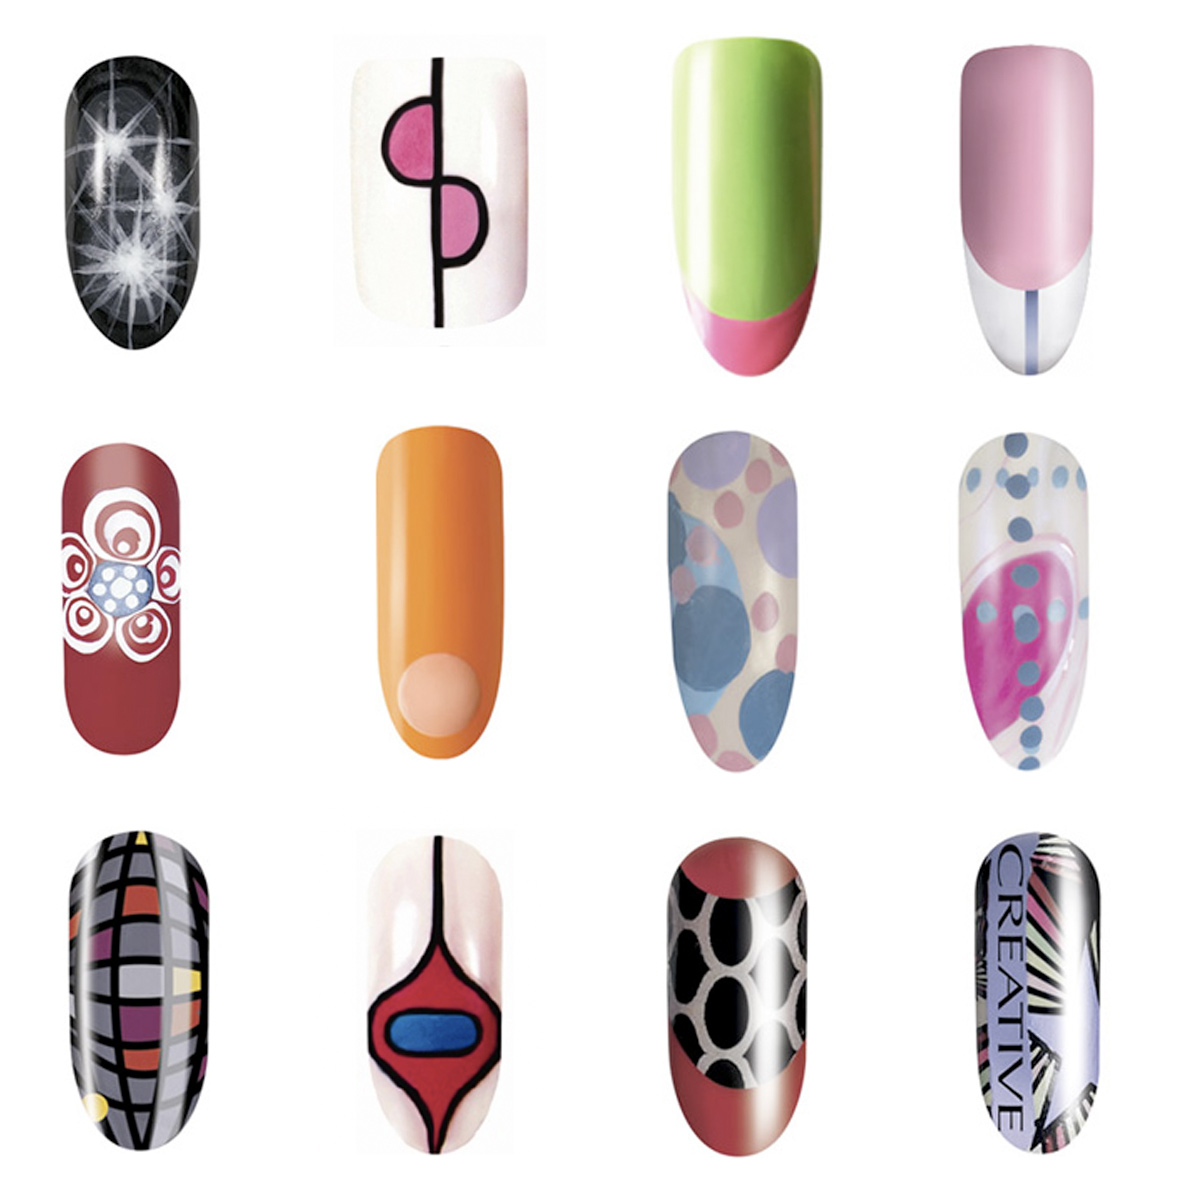 nail construction, nail art, nail salon, nail designs pictures, nail fungus, nail polish, nail definition, nail anatomy-12